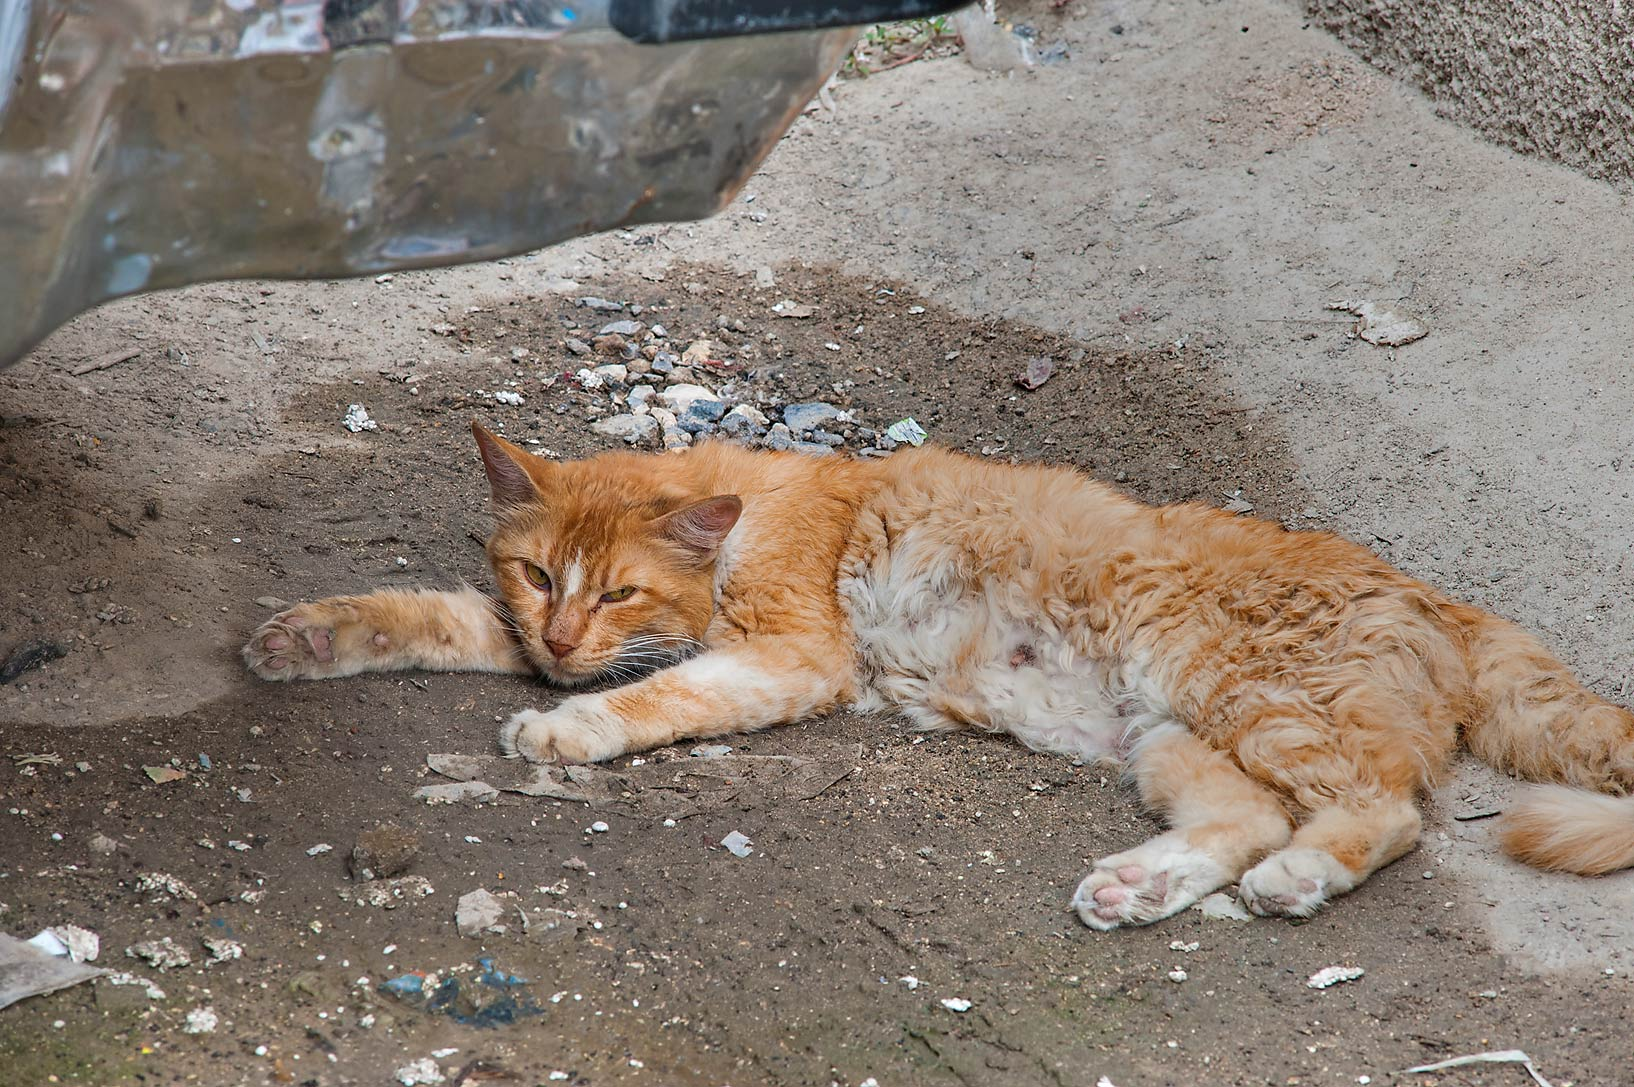 Brown cat sleeping under a leaking air...St. in Musheirib area. Doha, Qatar